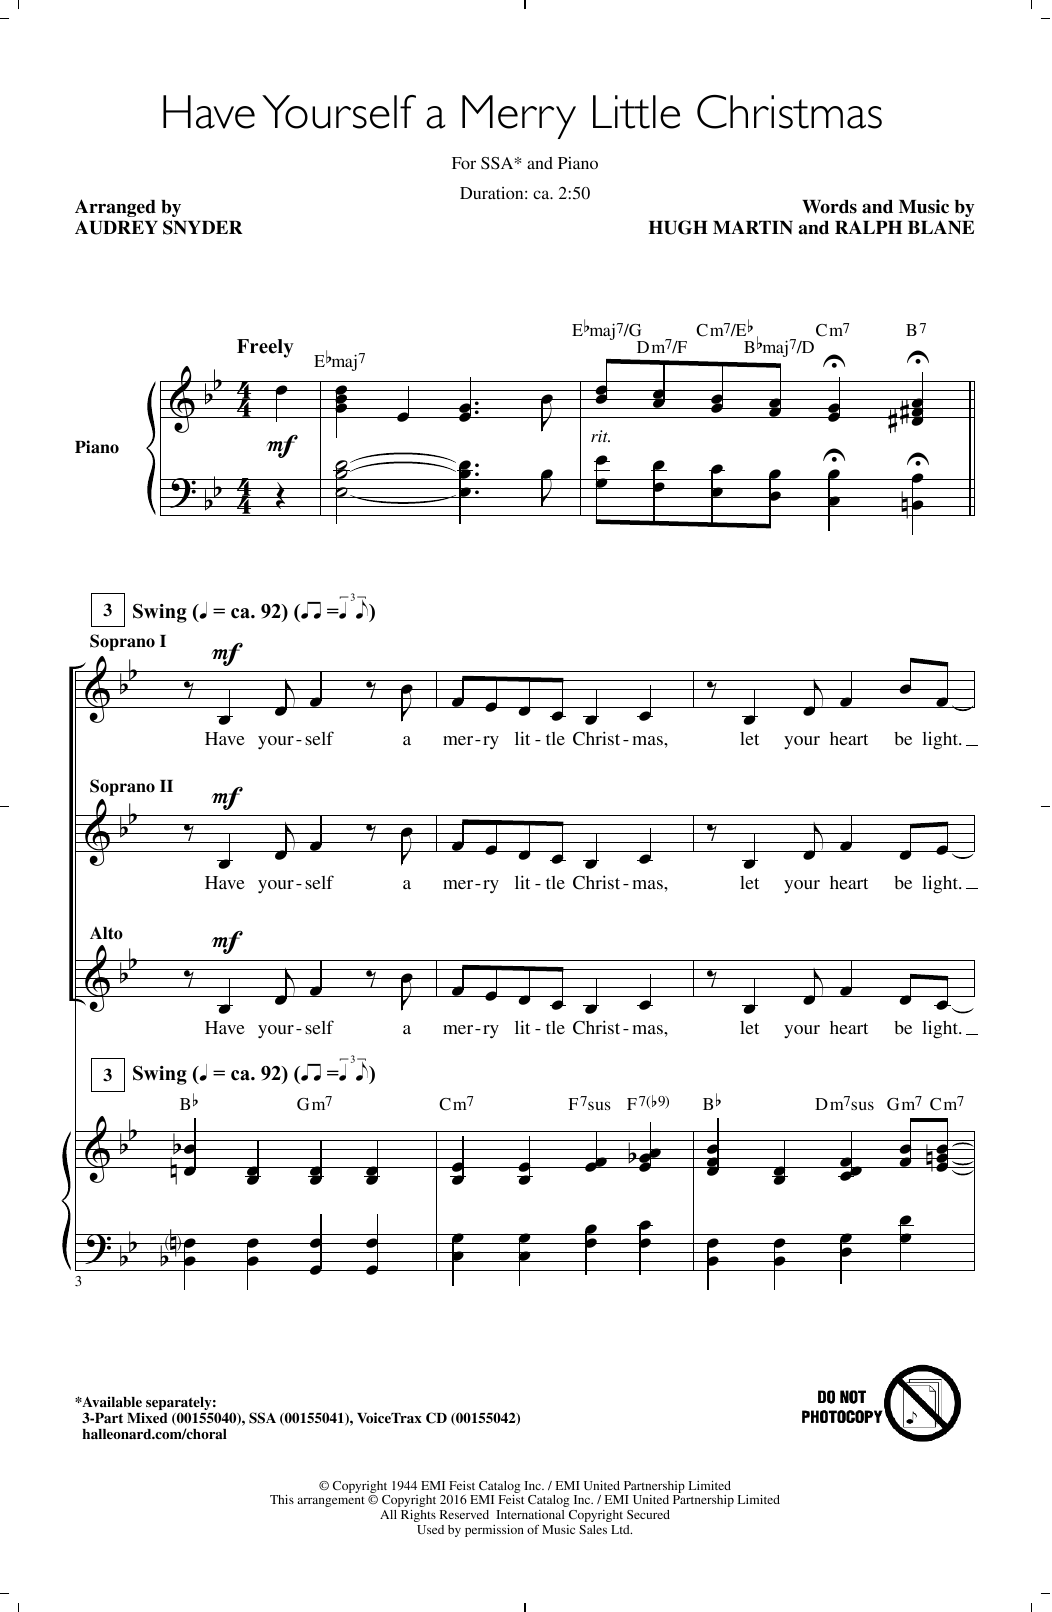 Have Yourself A Merry Little Christmas Sheet Music Pdf.Audrey Snyder Have Yourself A Merry Little Christmas Sheet Music Notes Chords Download Printable Ssa Sku 173430